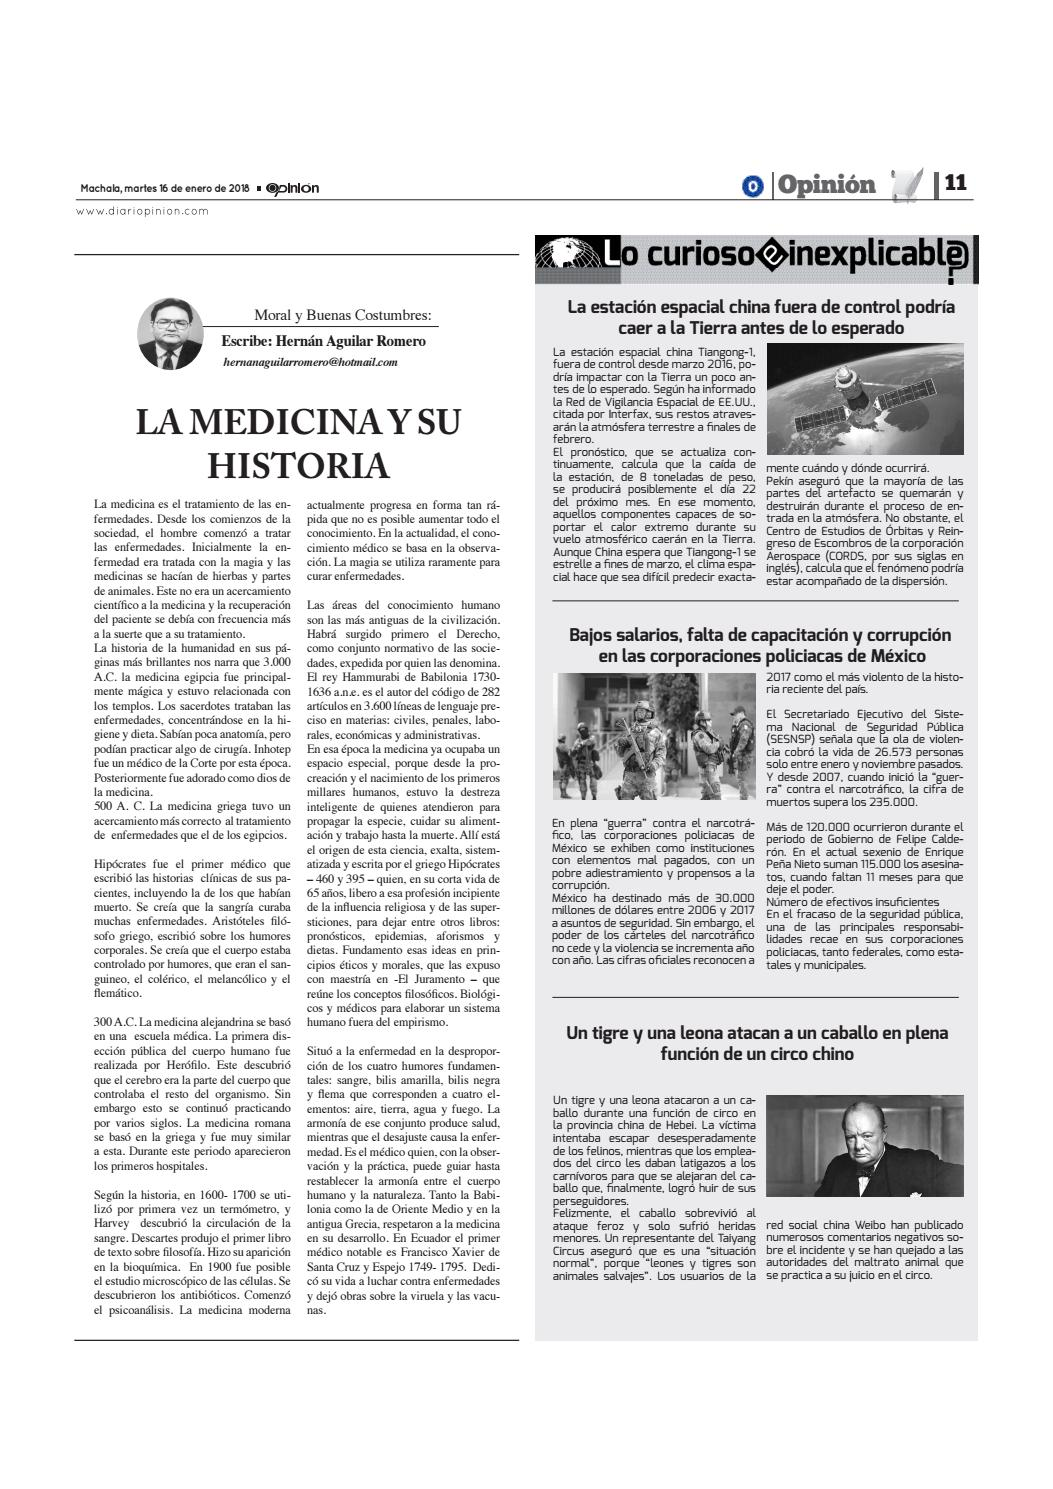 Impreso 16 01 18 by Diario Opinion - issuu